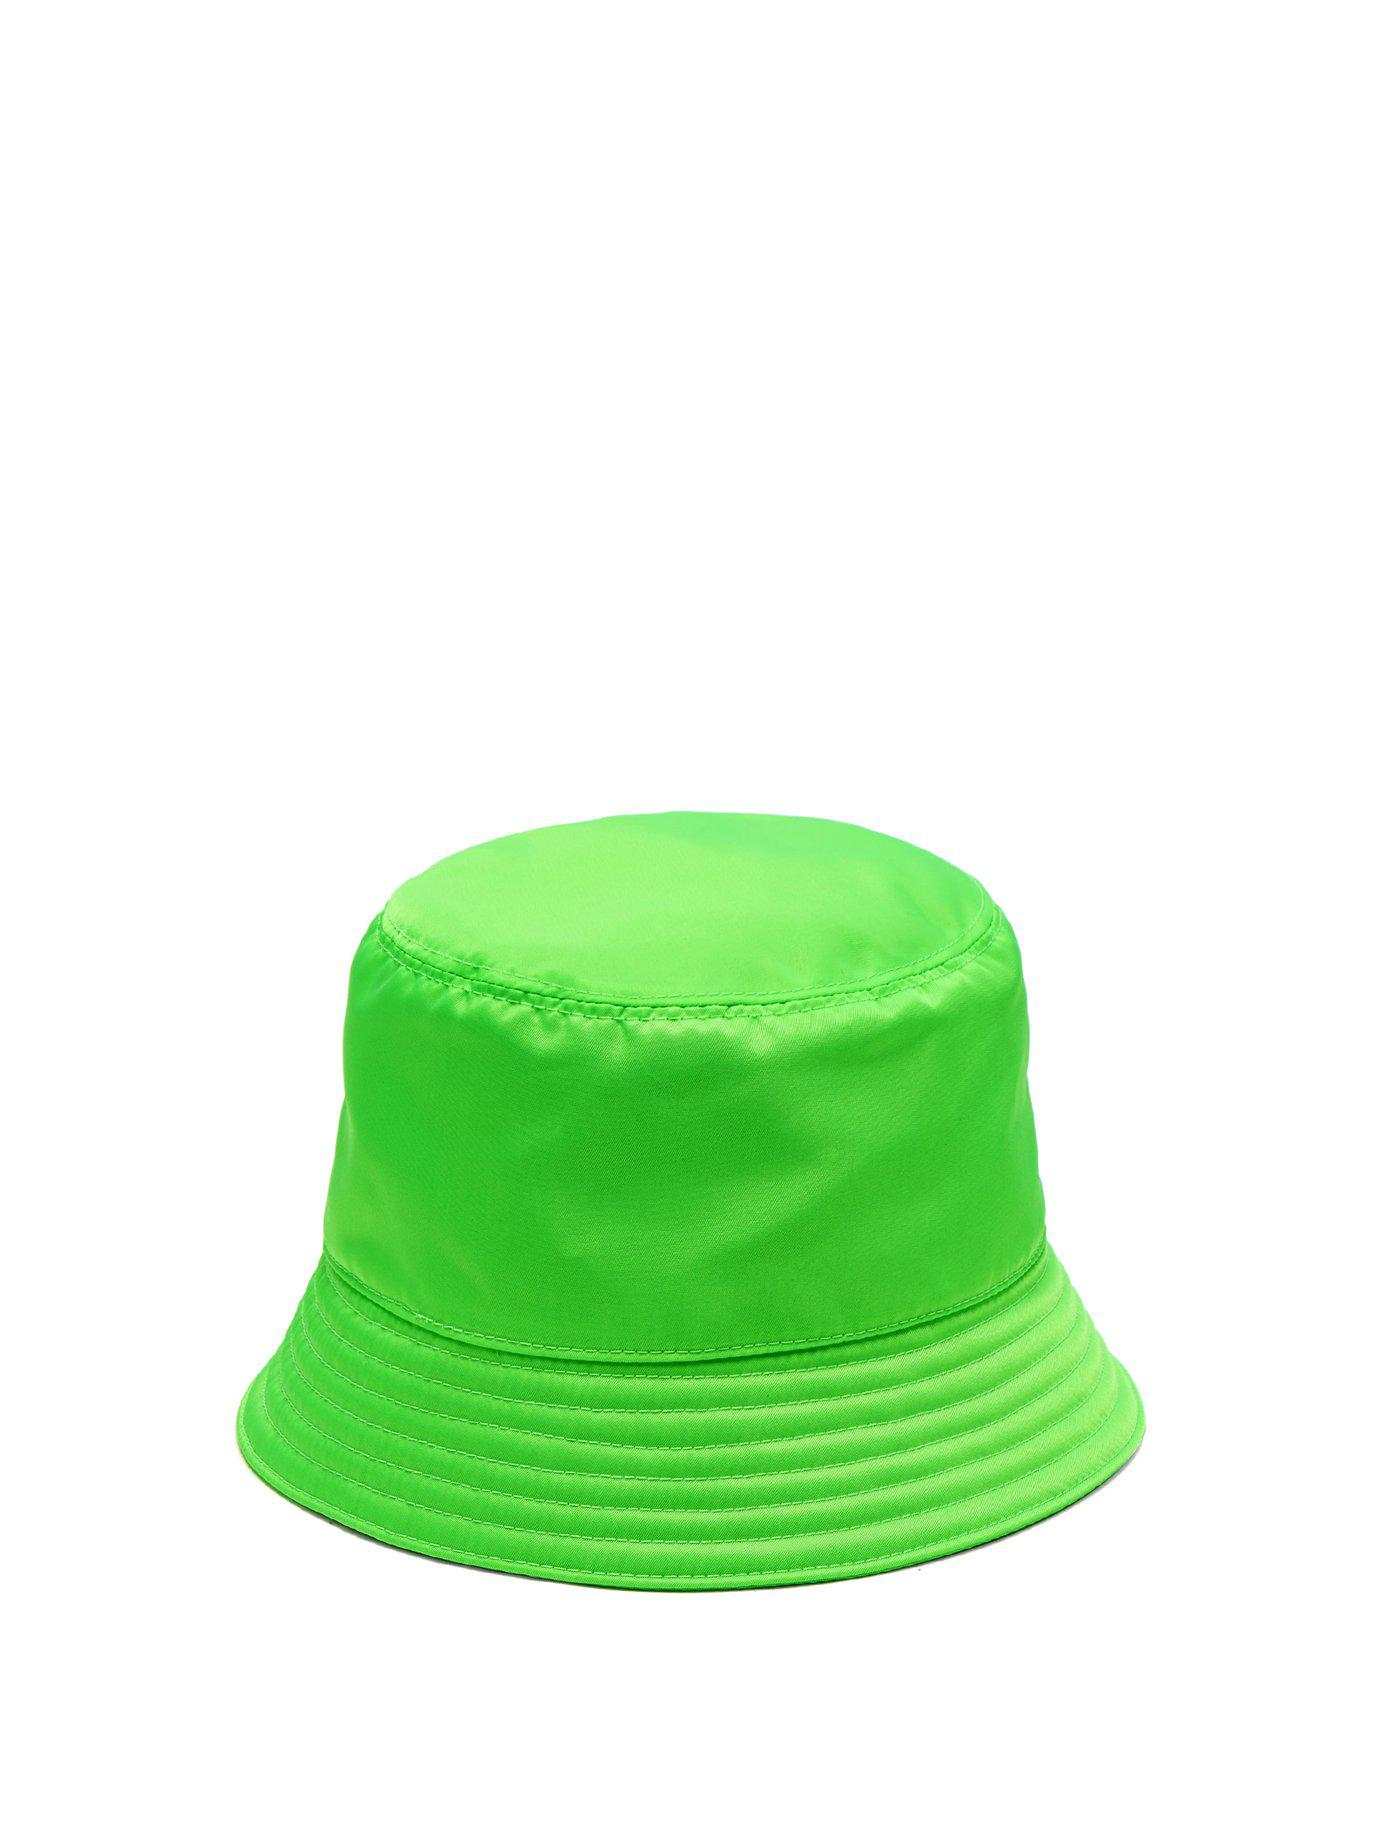 7327477fce1 Lyst prada triangle logo bucket hat in green for men jpg 1385x1846 Prada  sun hat